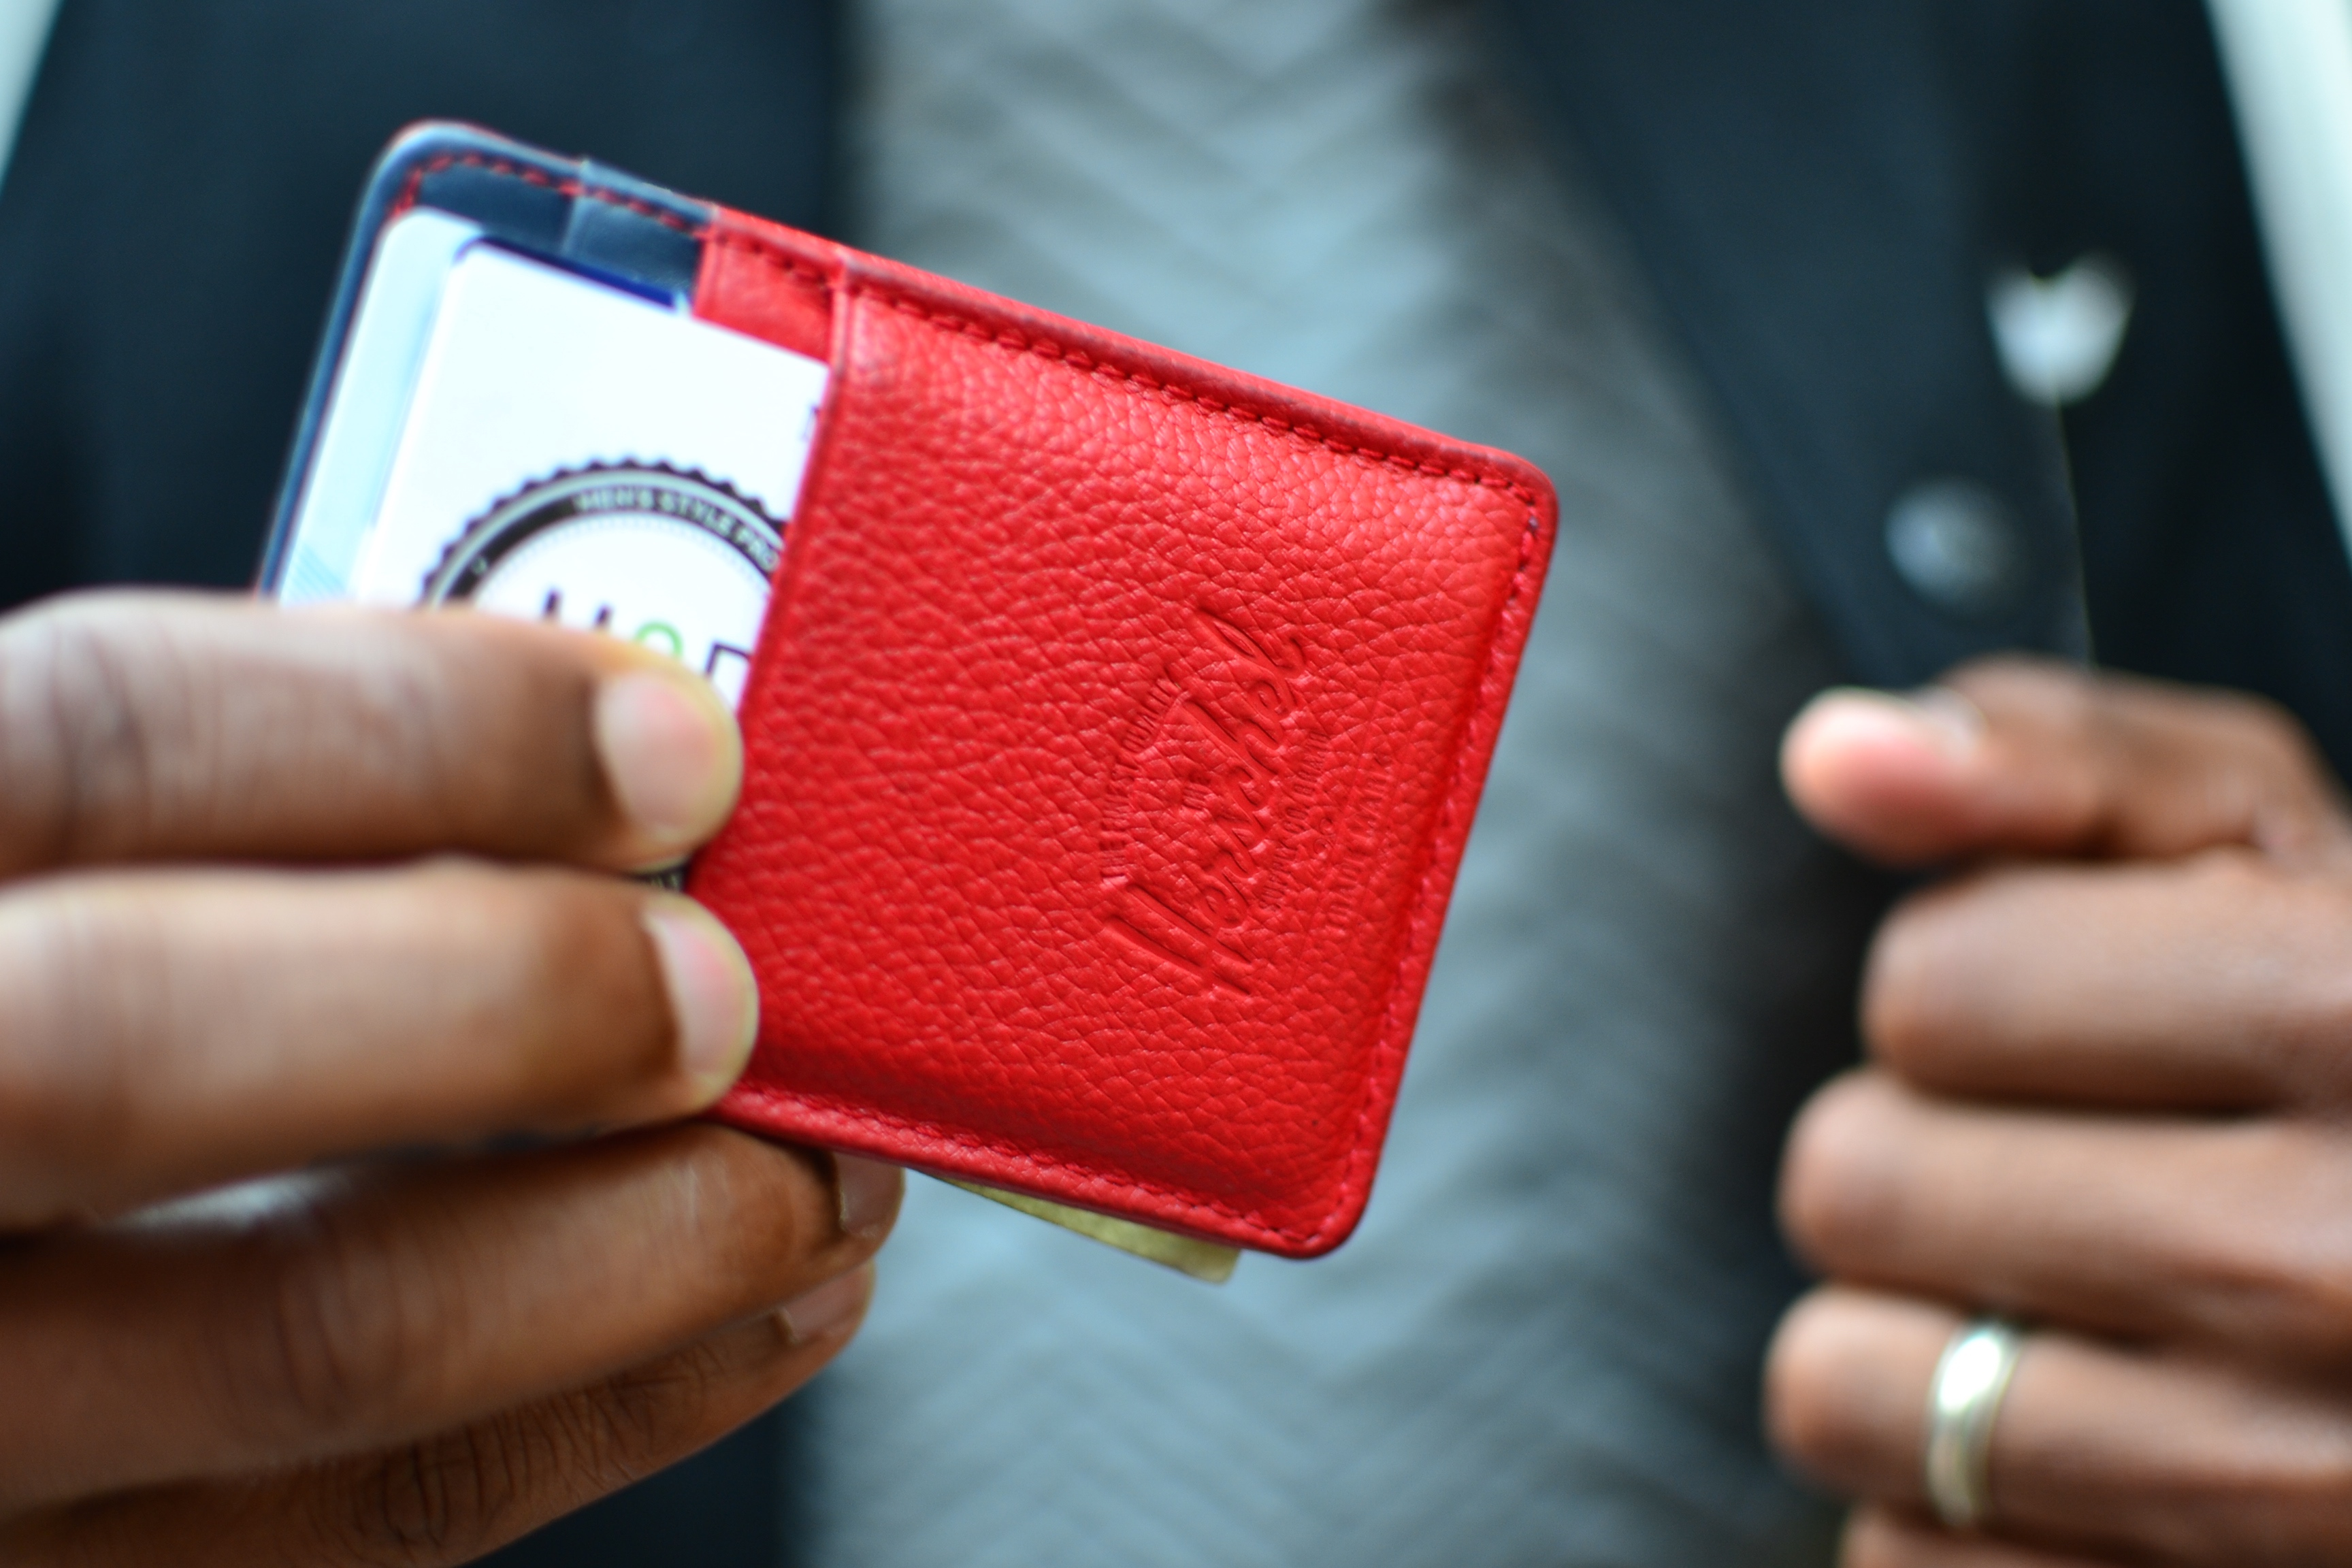 Herschel & Supply Co Red leather wallet from Zappos.com on Men's Style Pro Holiday Gift Guide